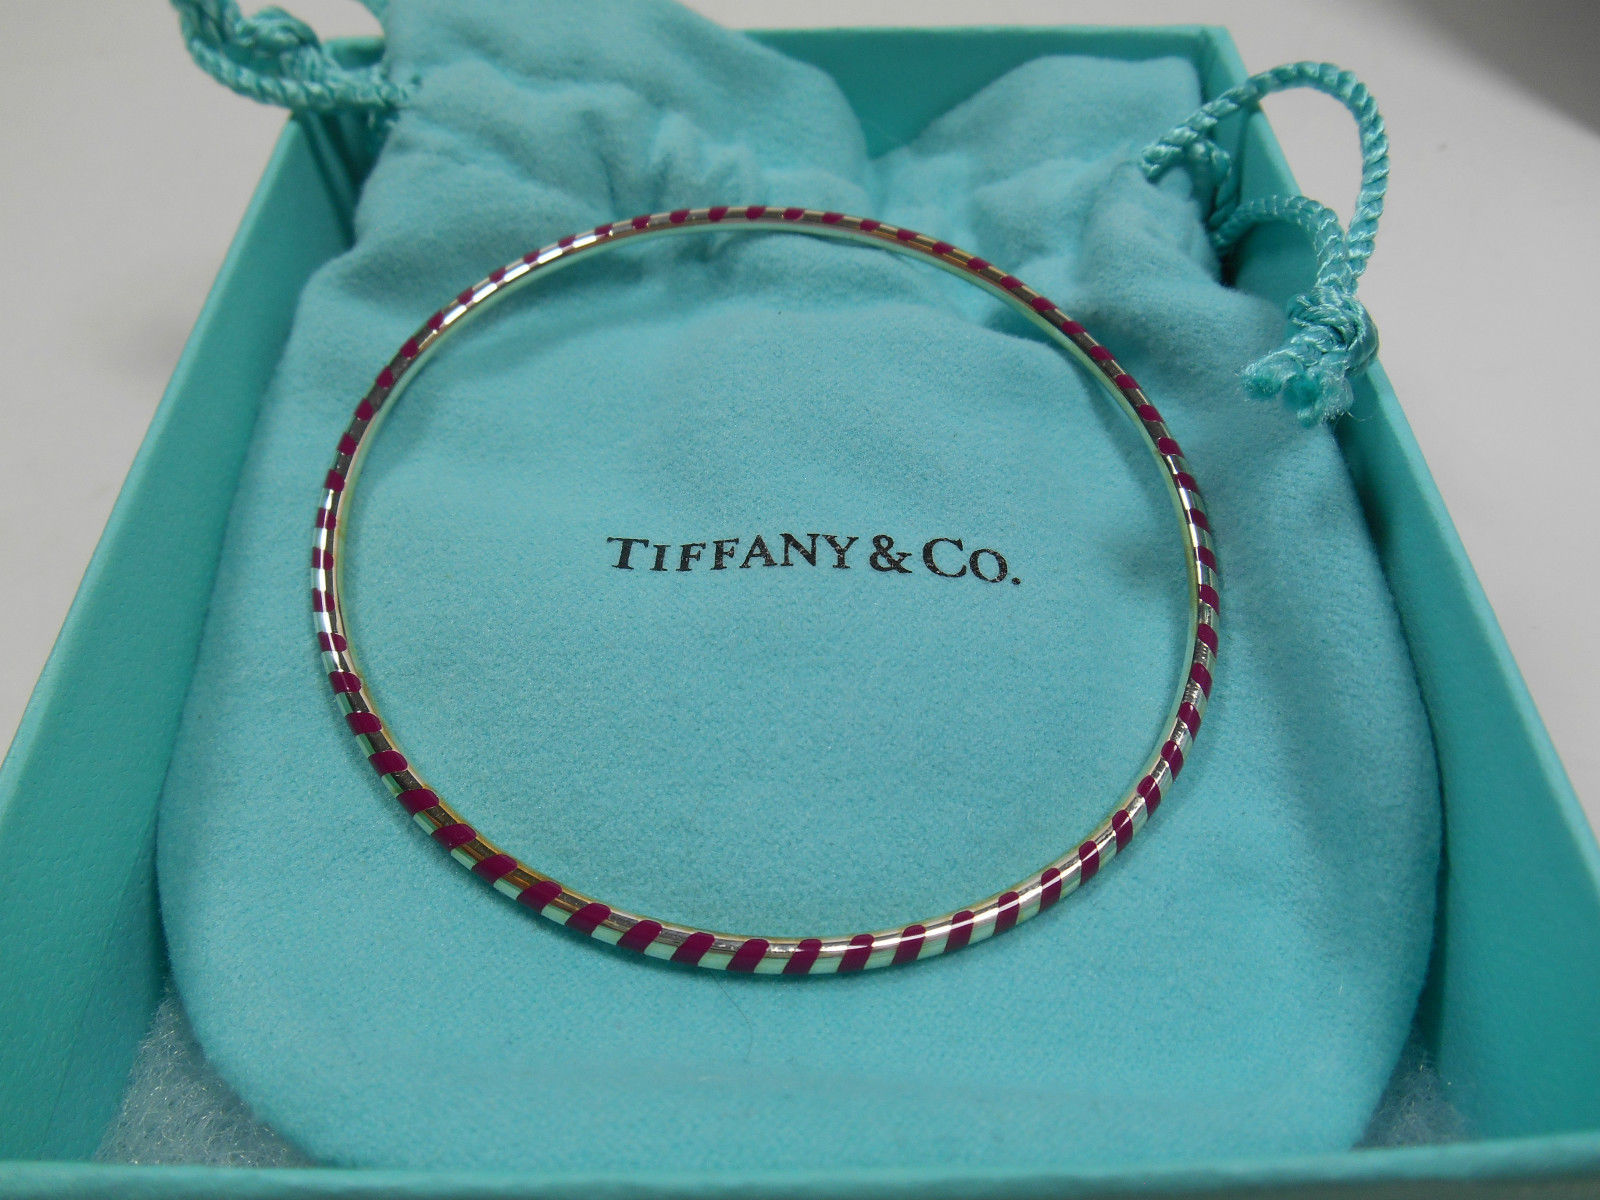 Primary image for Tiffany & Co. Picasso Venezia Palina Purple Enamel Sterling Silver Bracelet